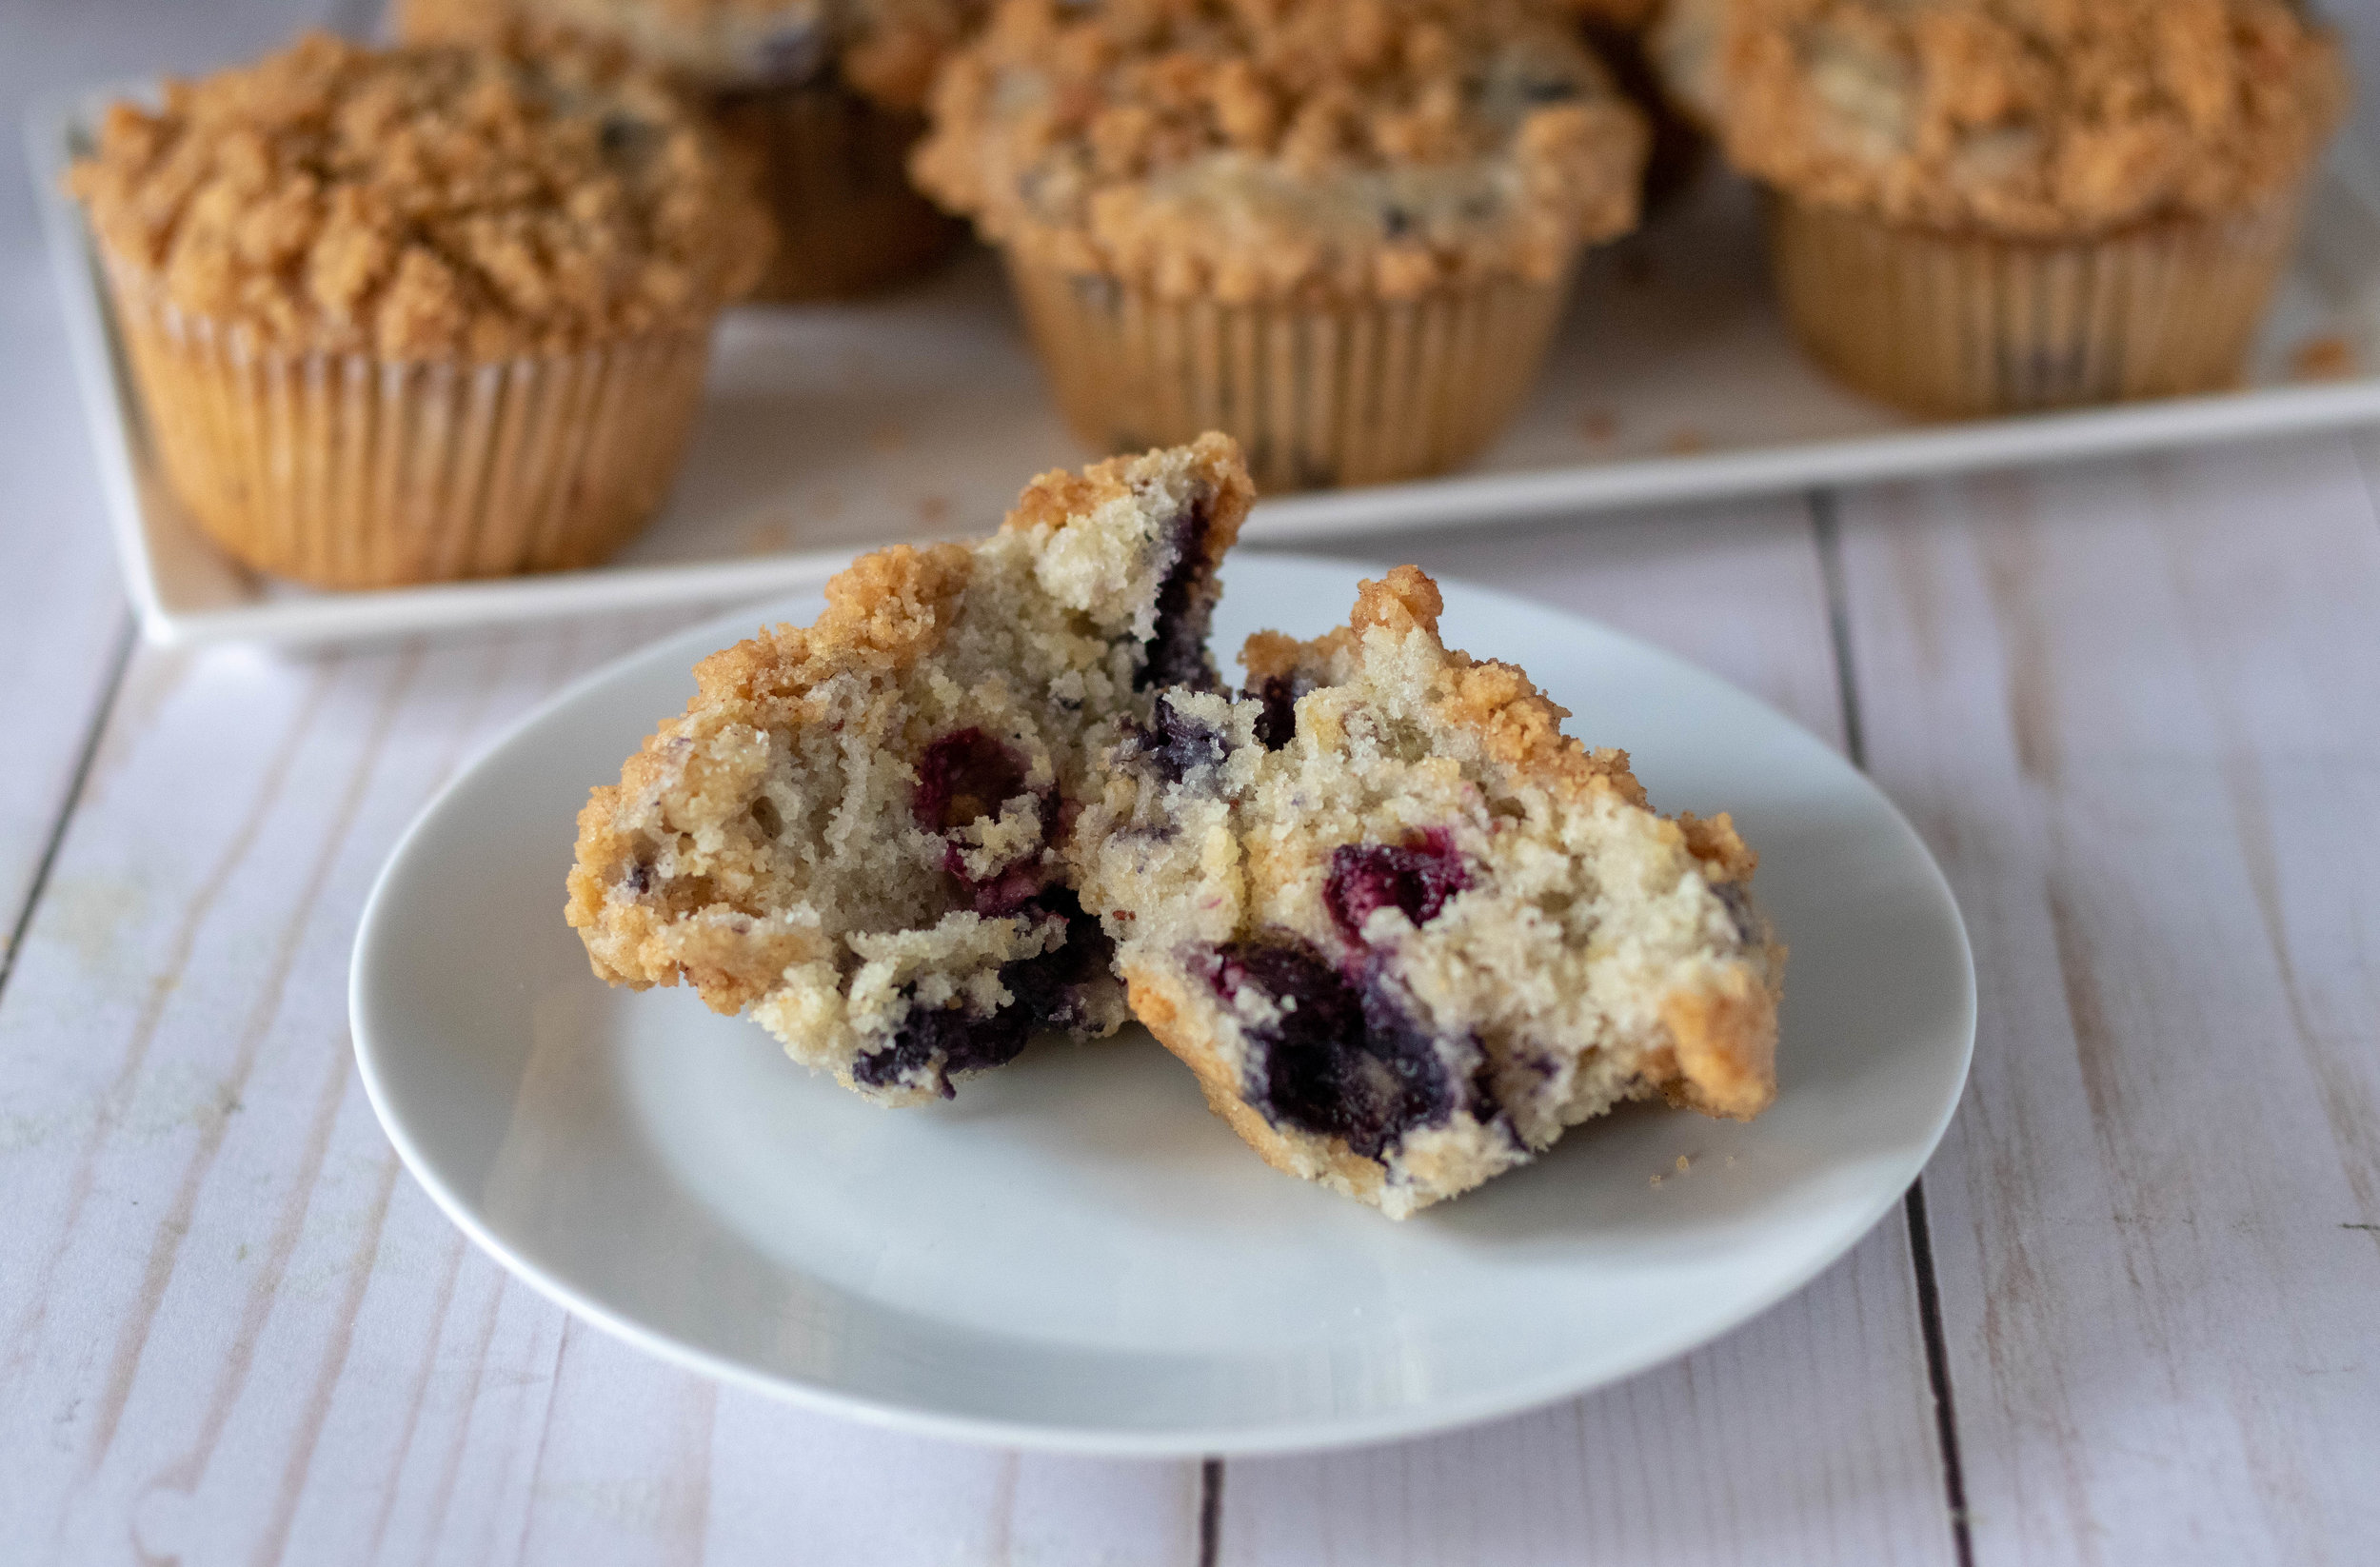 Vegan Blueberry Crumble Muffins